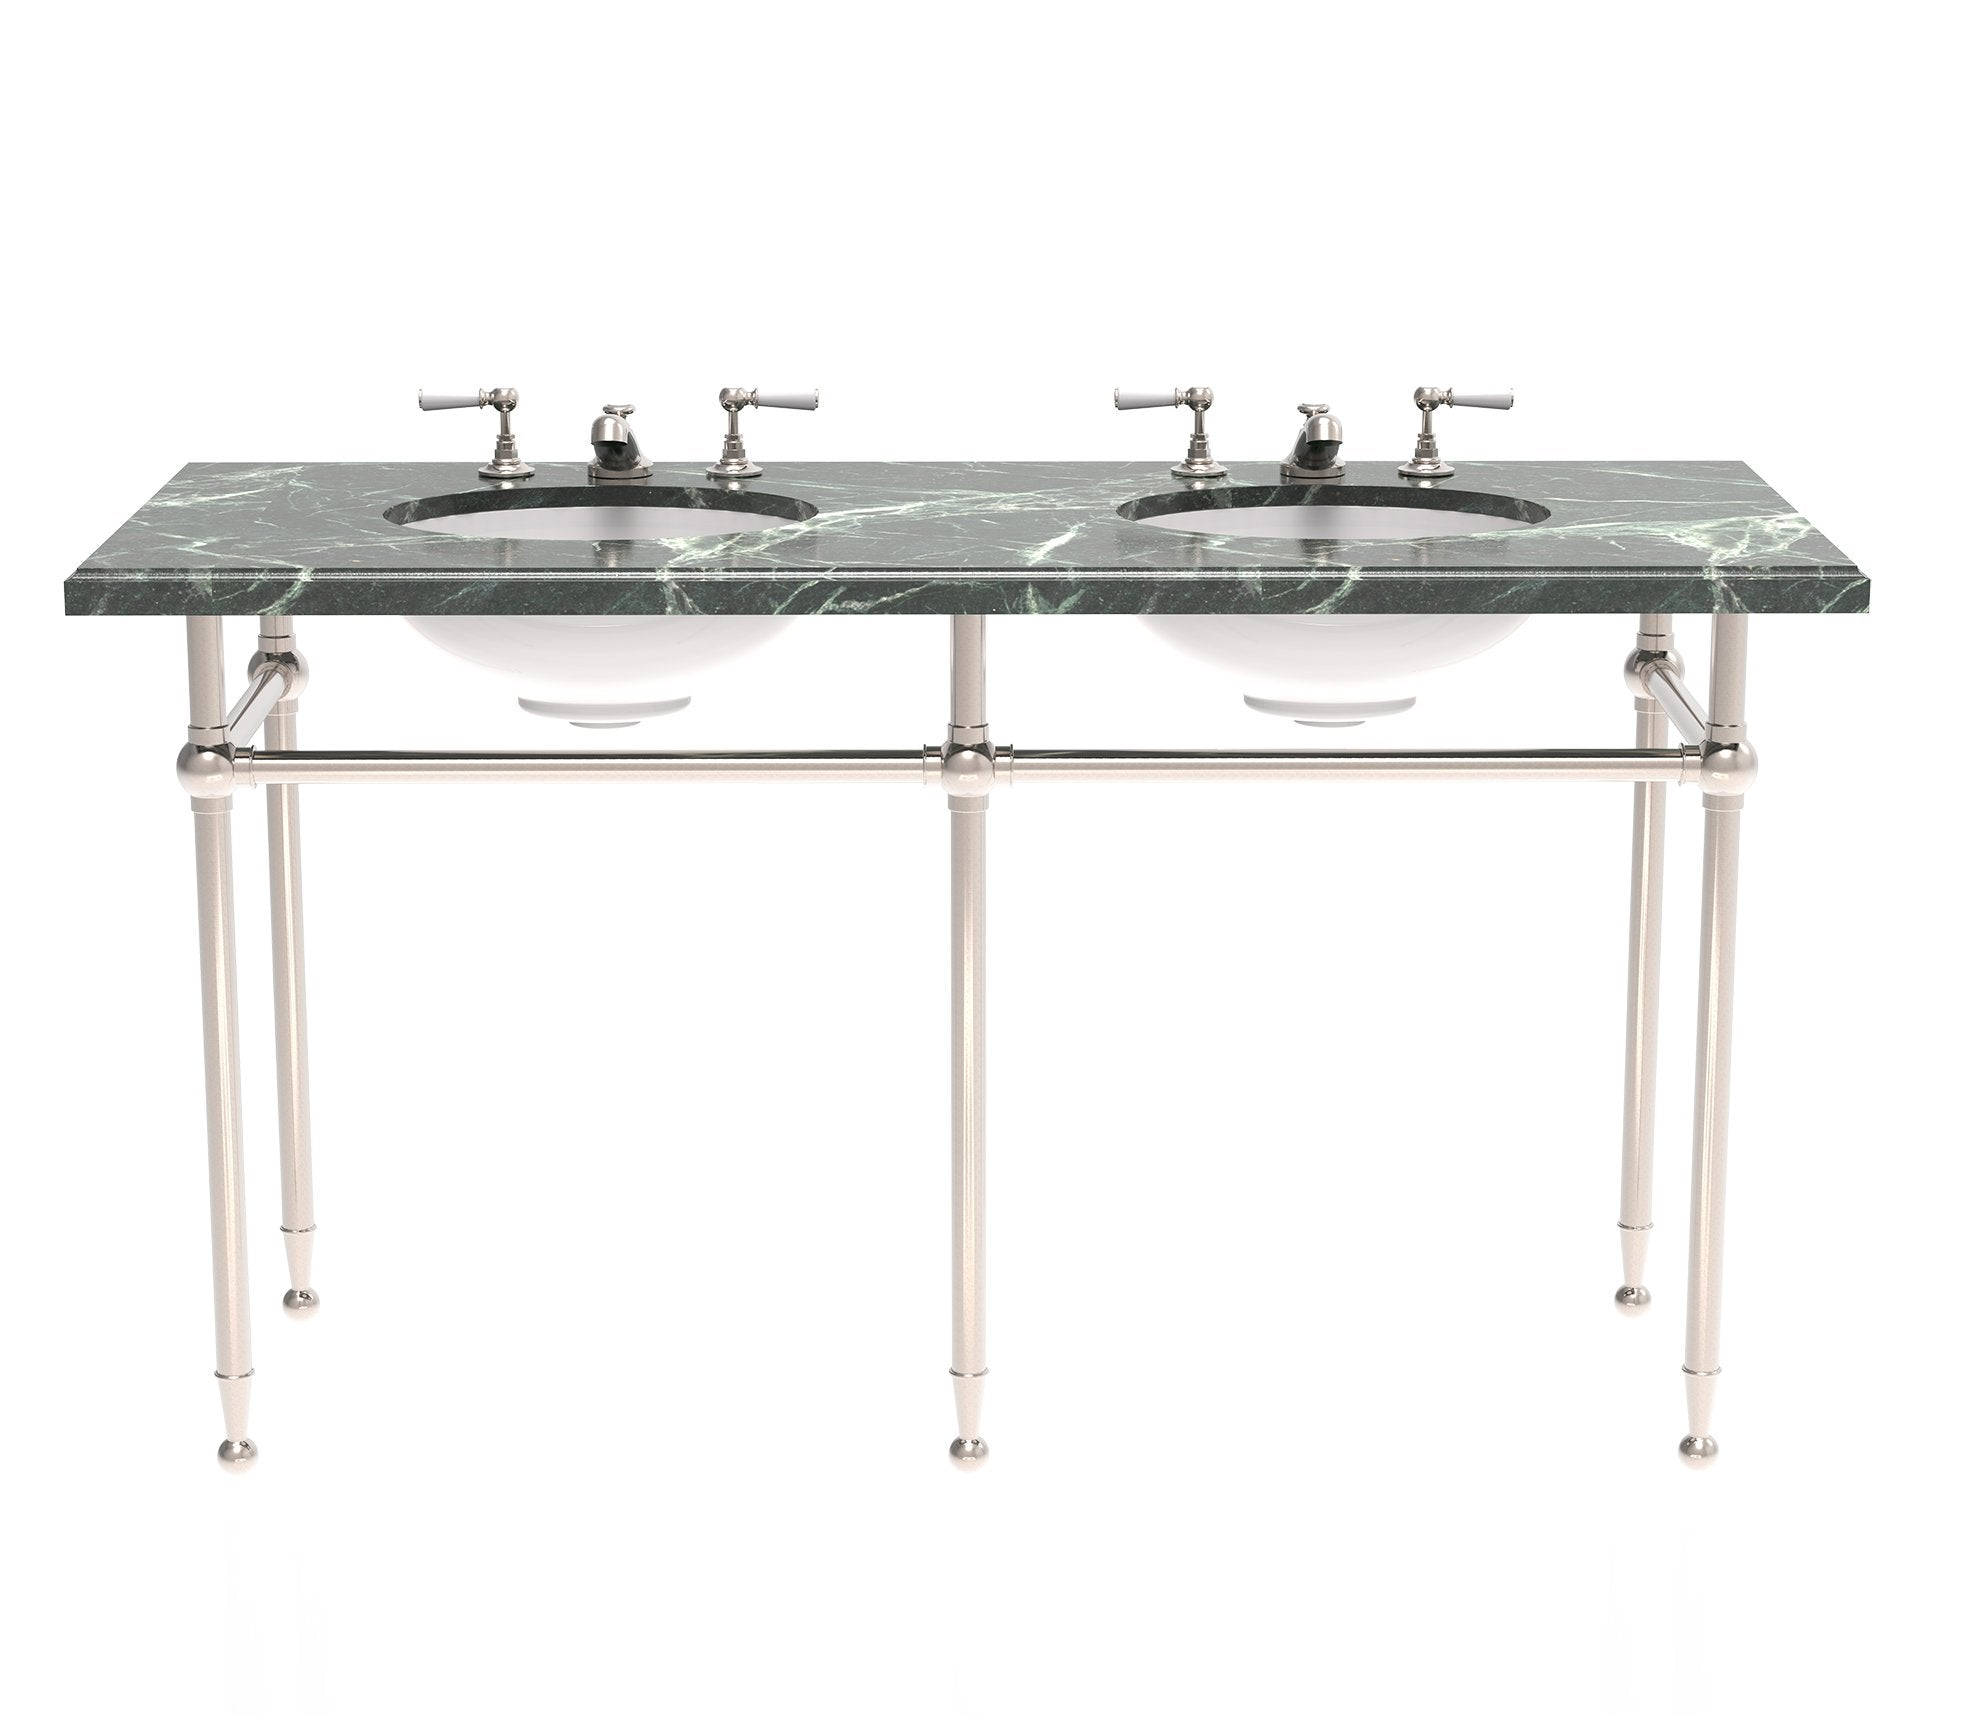 Hanbury Washstand Double 5-Leg Product Image 1